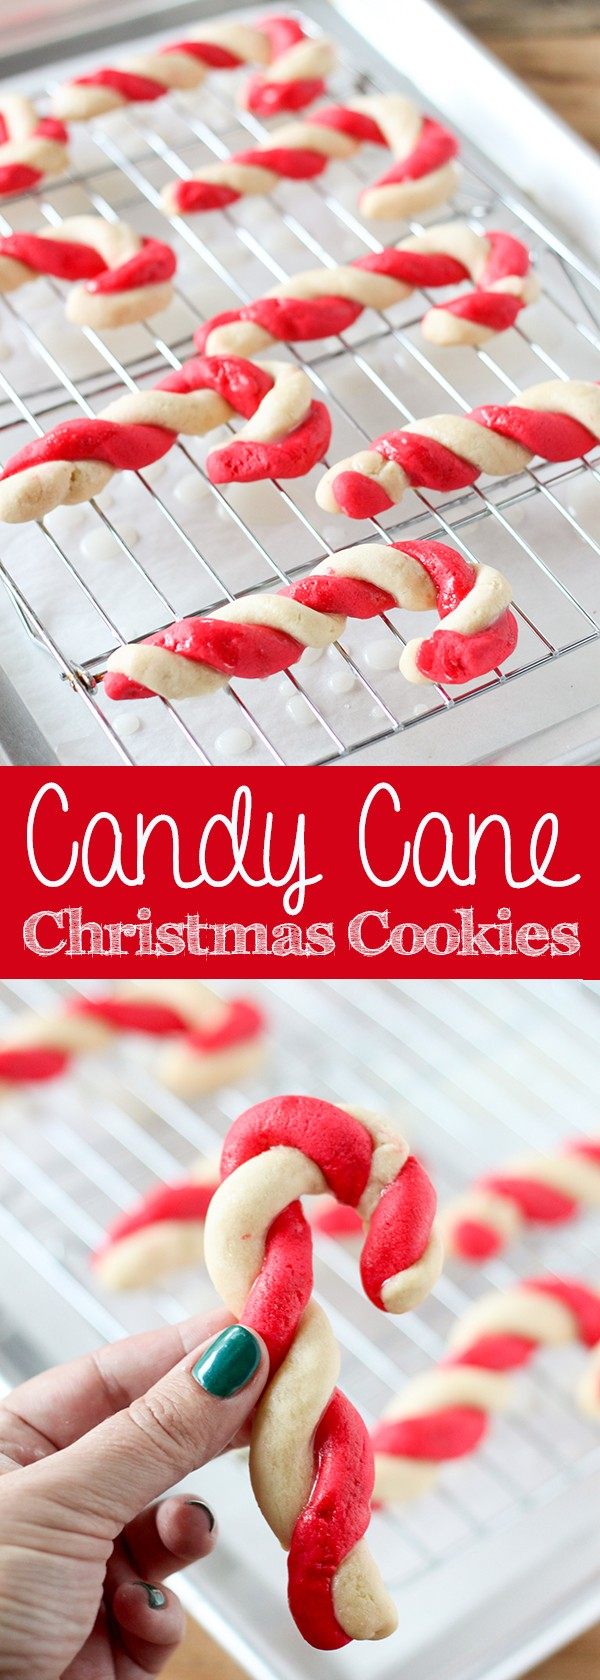 Get the recipe Candy Cane Christmas Cookies @recipes_to_go